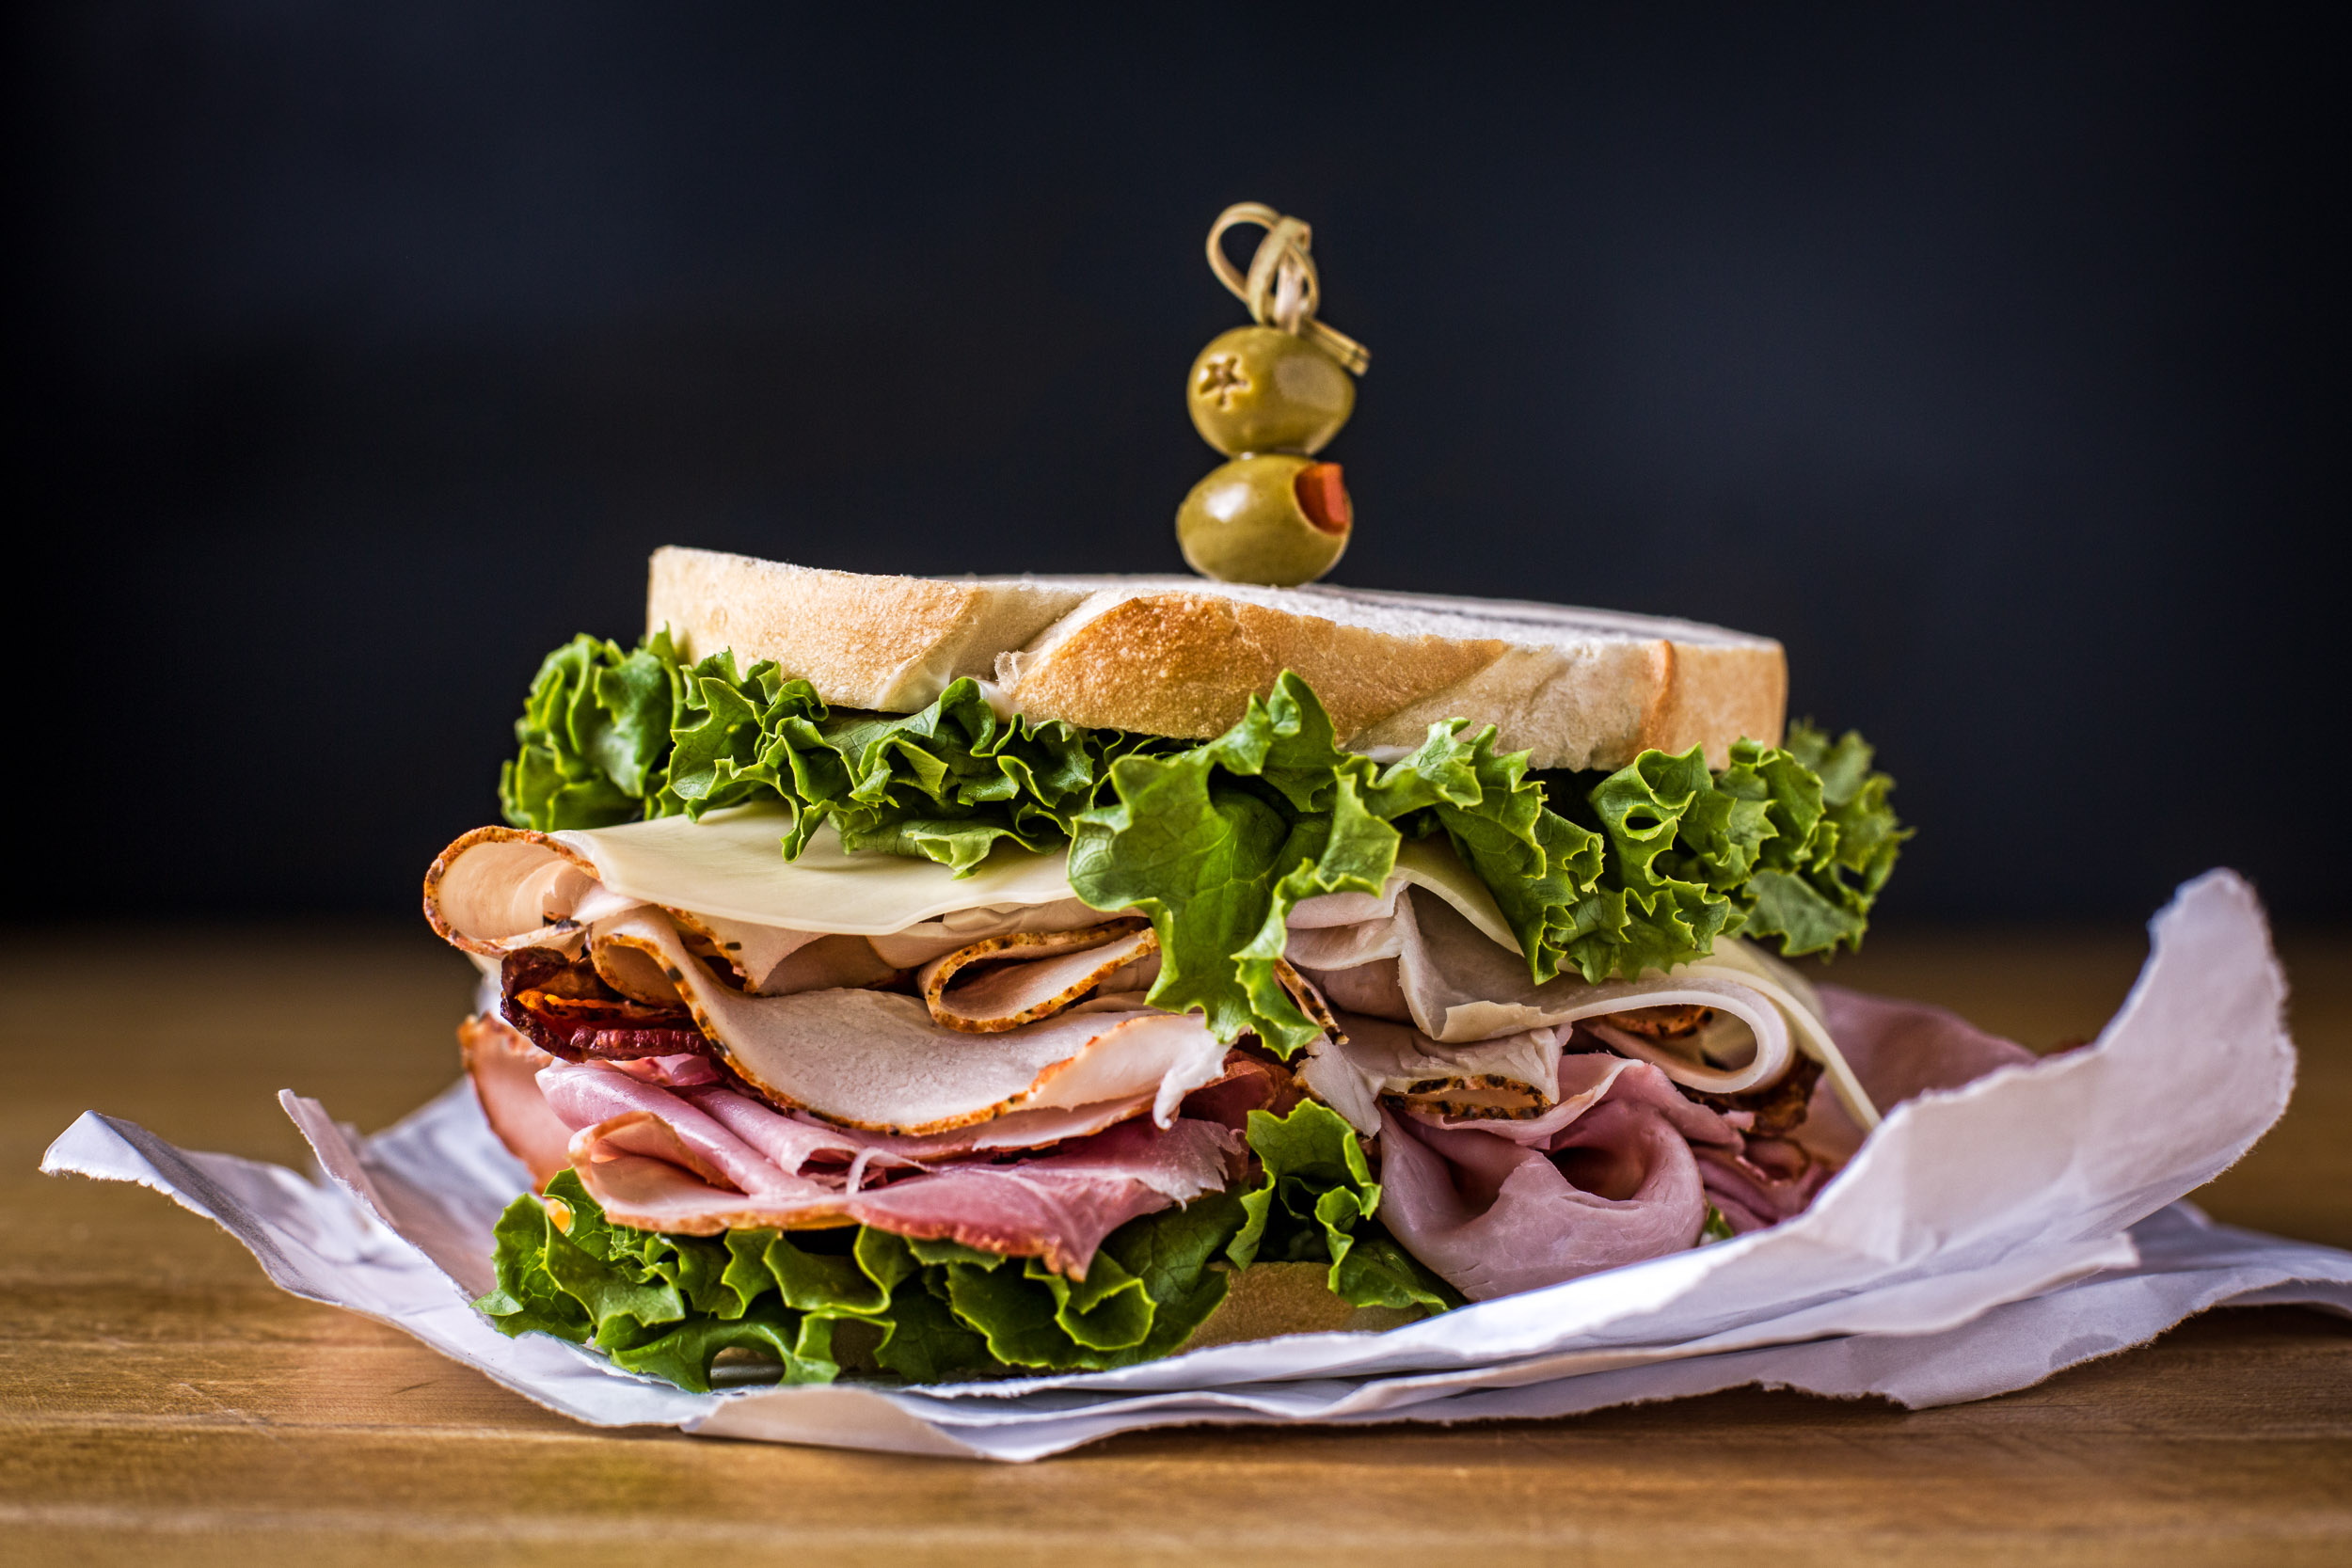 Turkey club deli sandwich